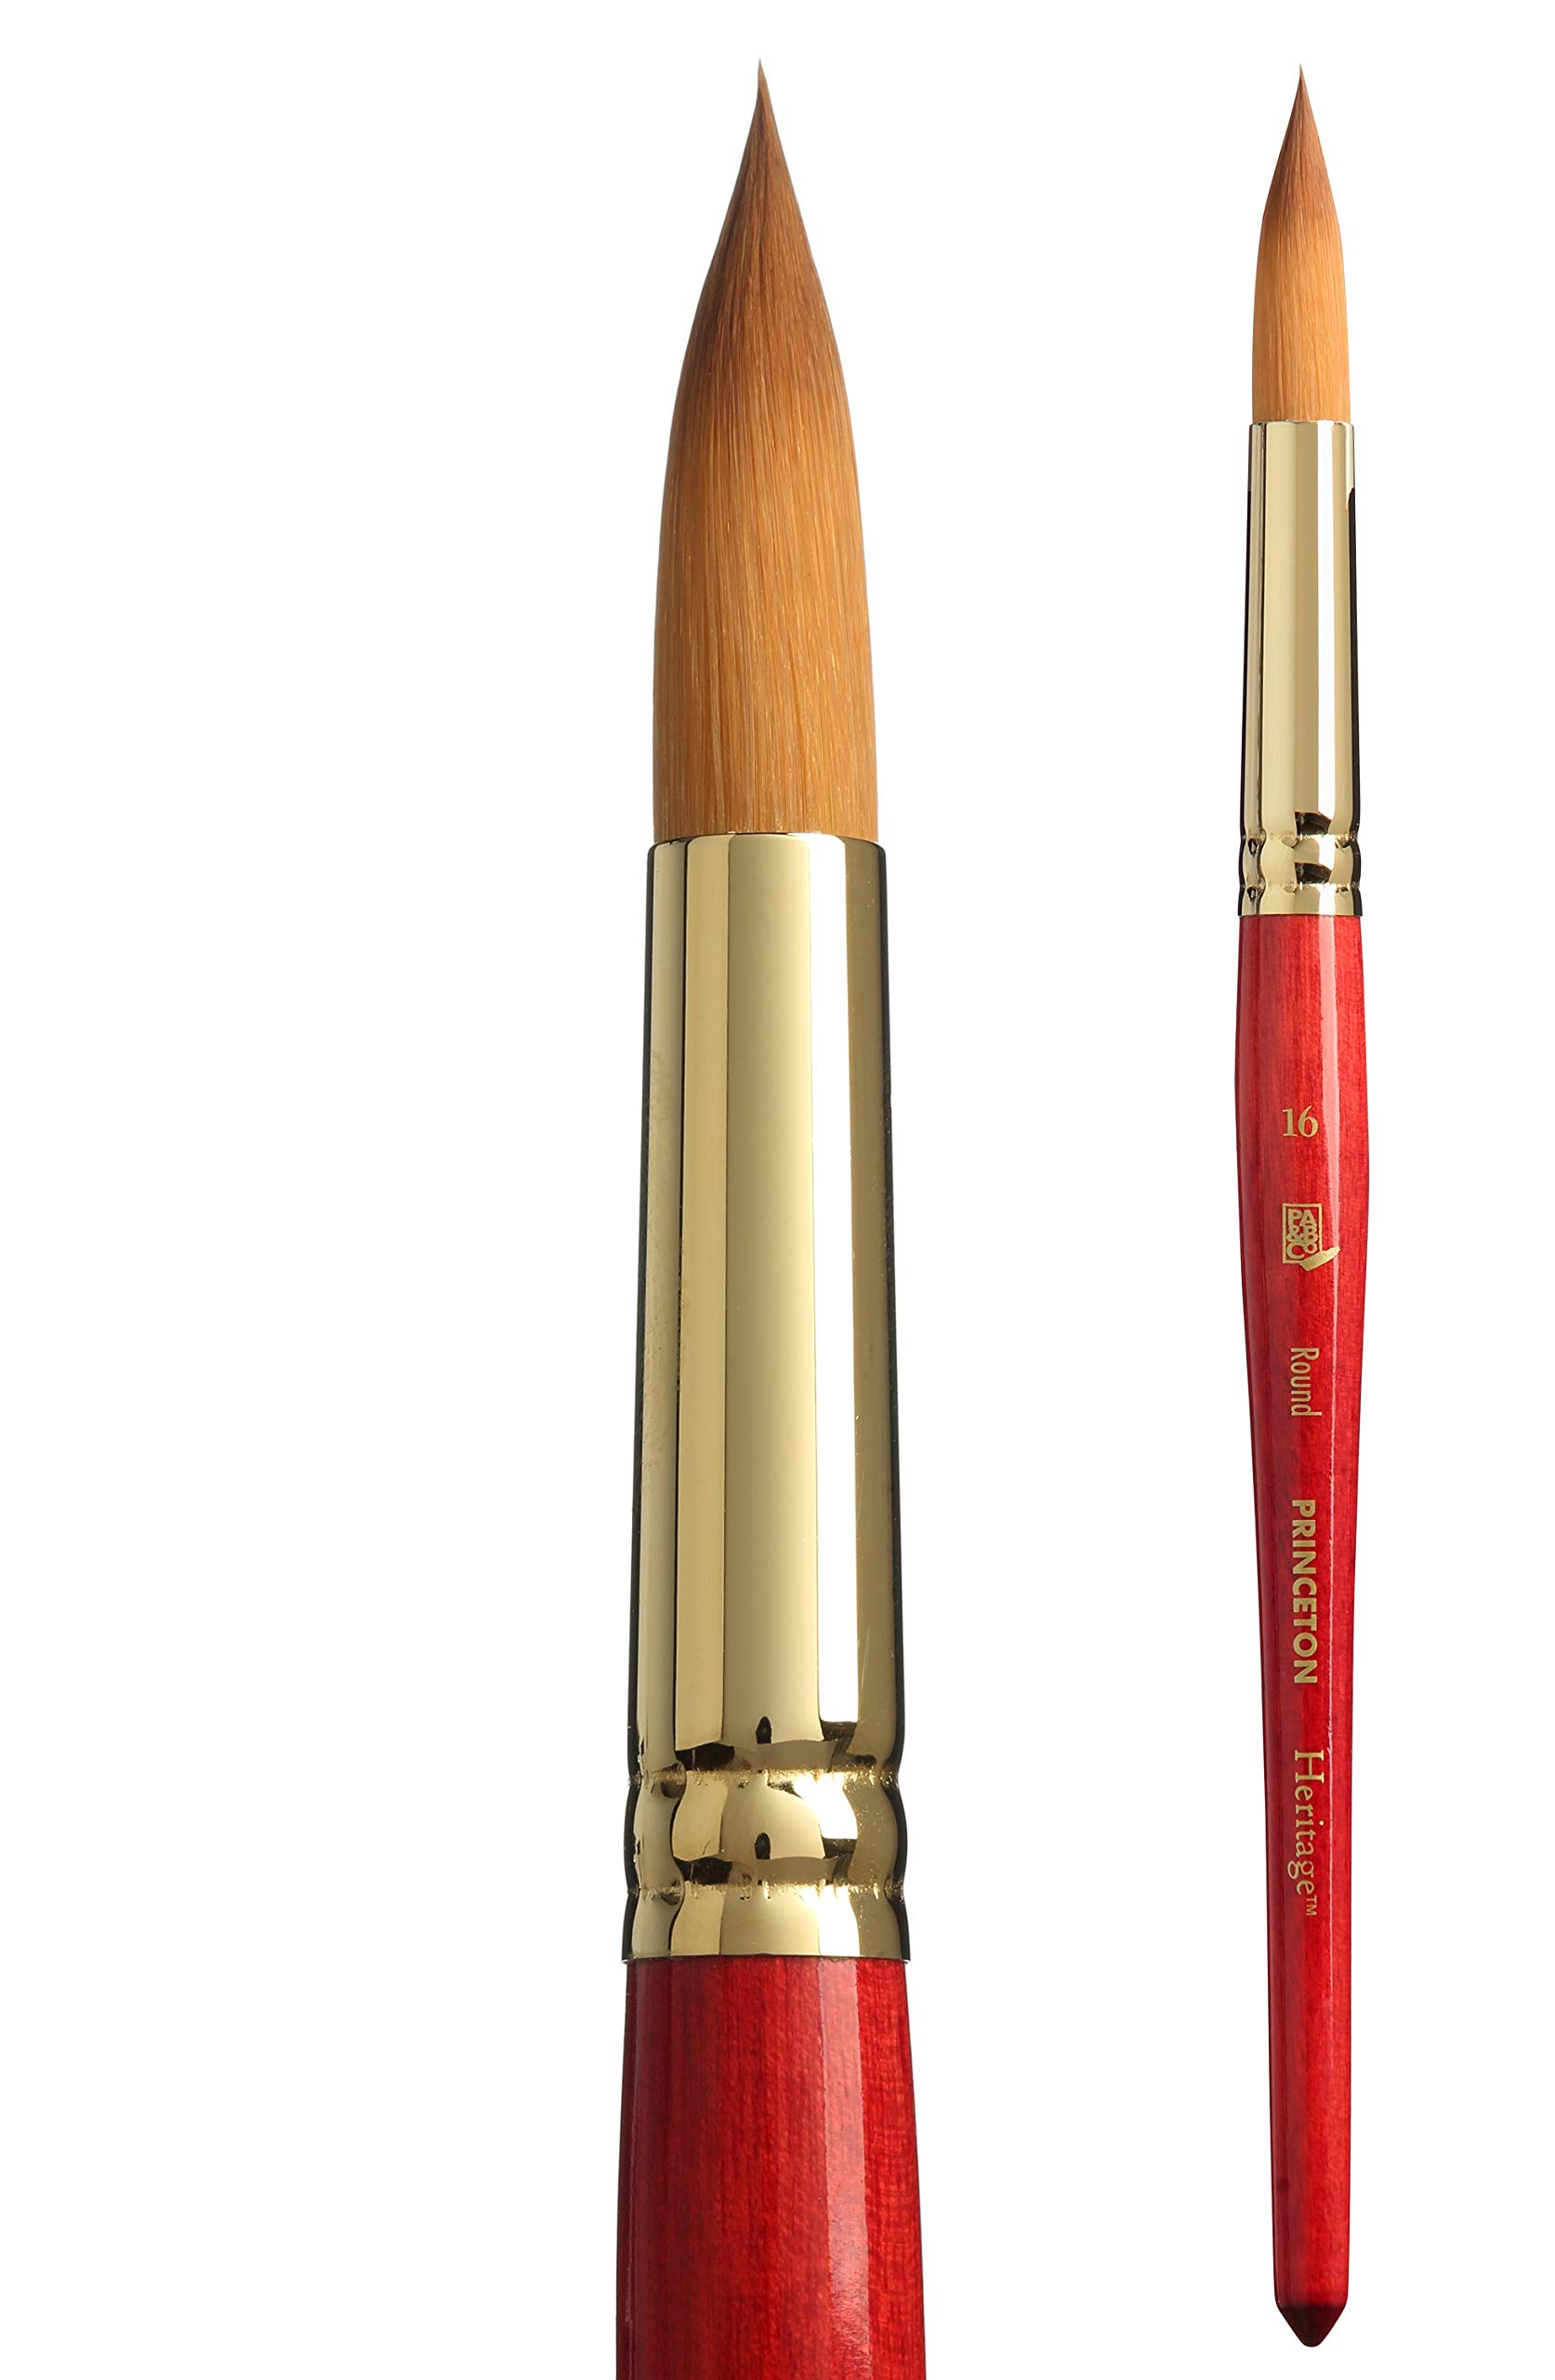 Princeton Heritage, Series 4050, Synthetic Sable Paint Brush for Watercolor, Round, 16